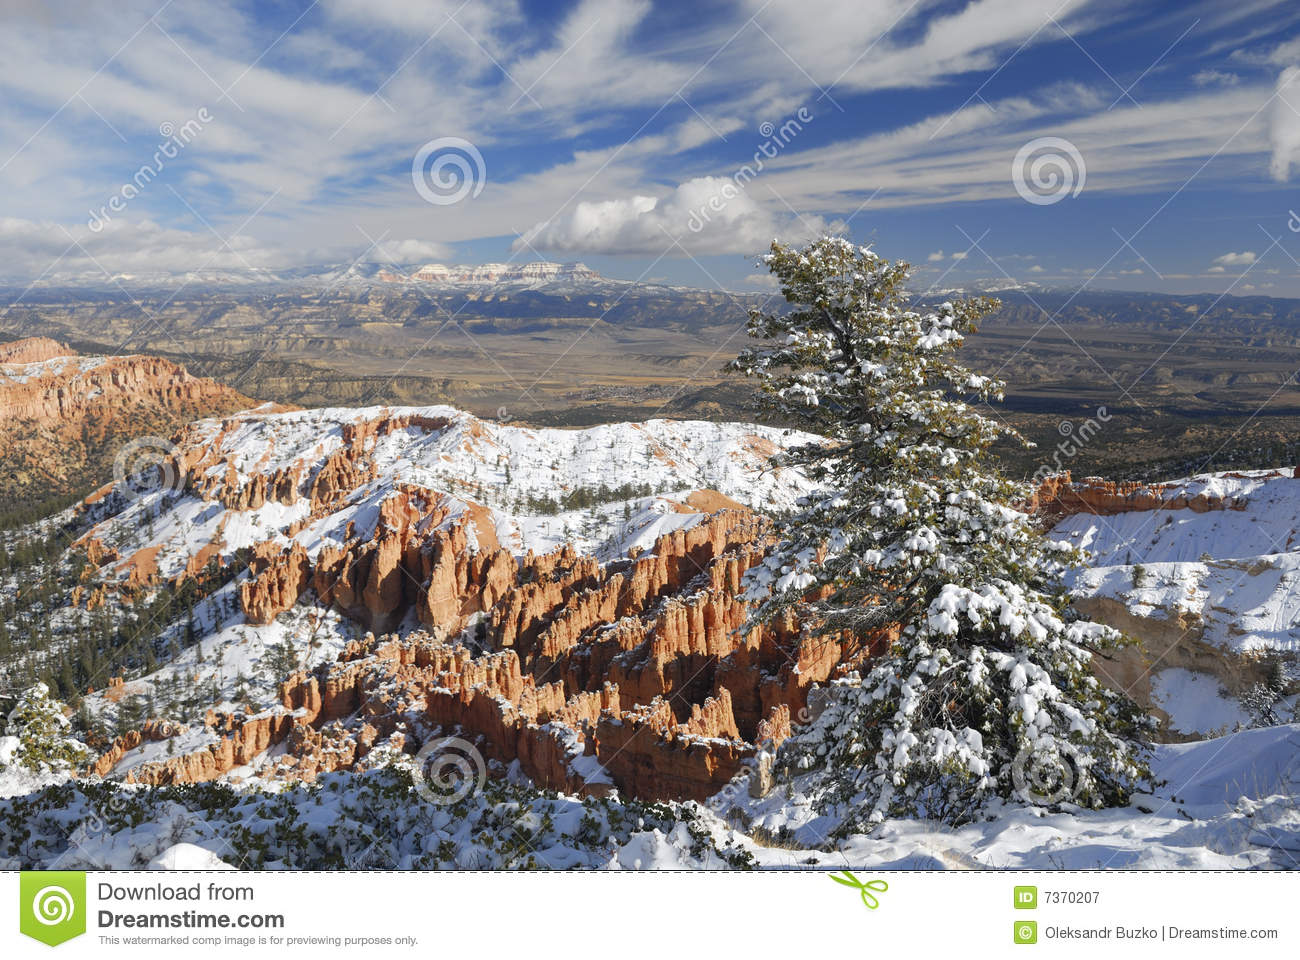 Bryce Canyon in winter from Inspiration Point